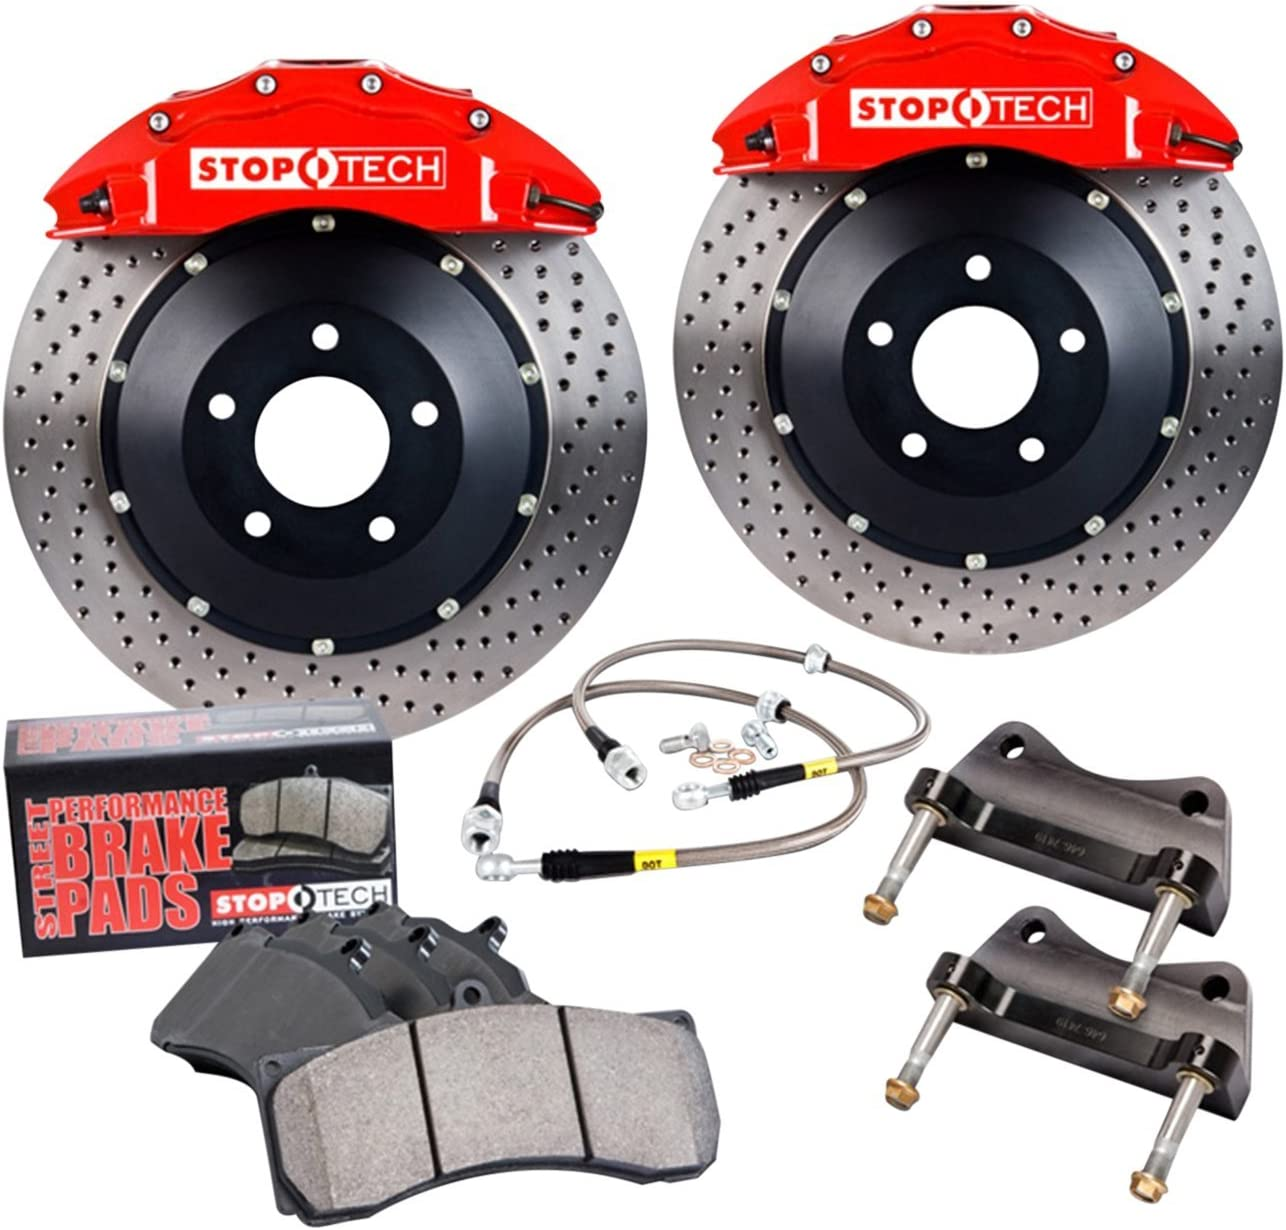 StopTech It is very popular 83.892.4300.R2 Big Brake Pack In stock Kit 1